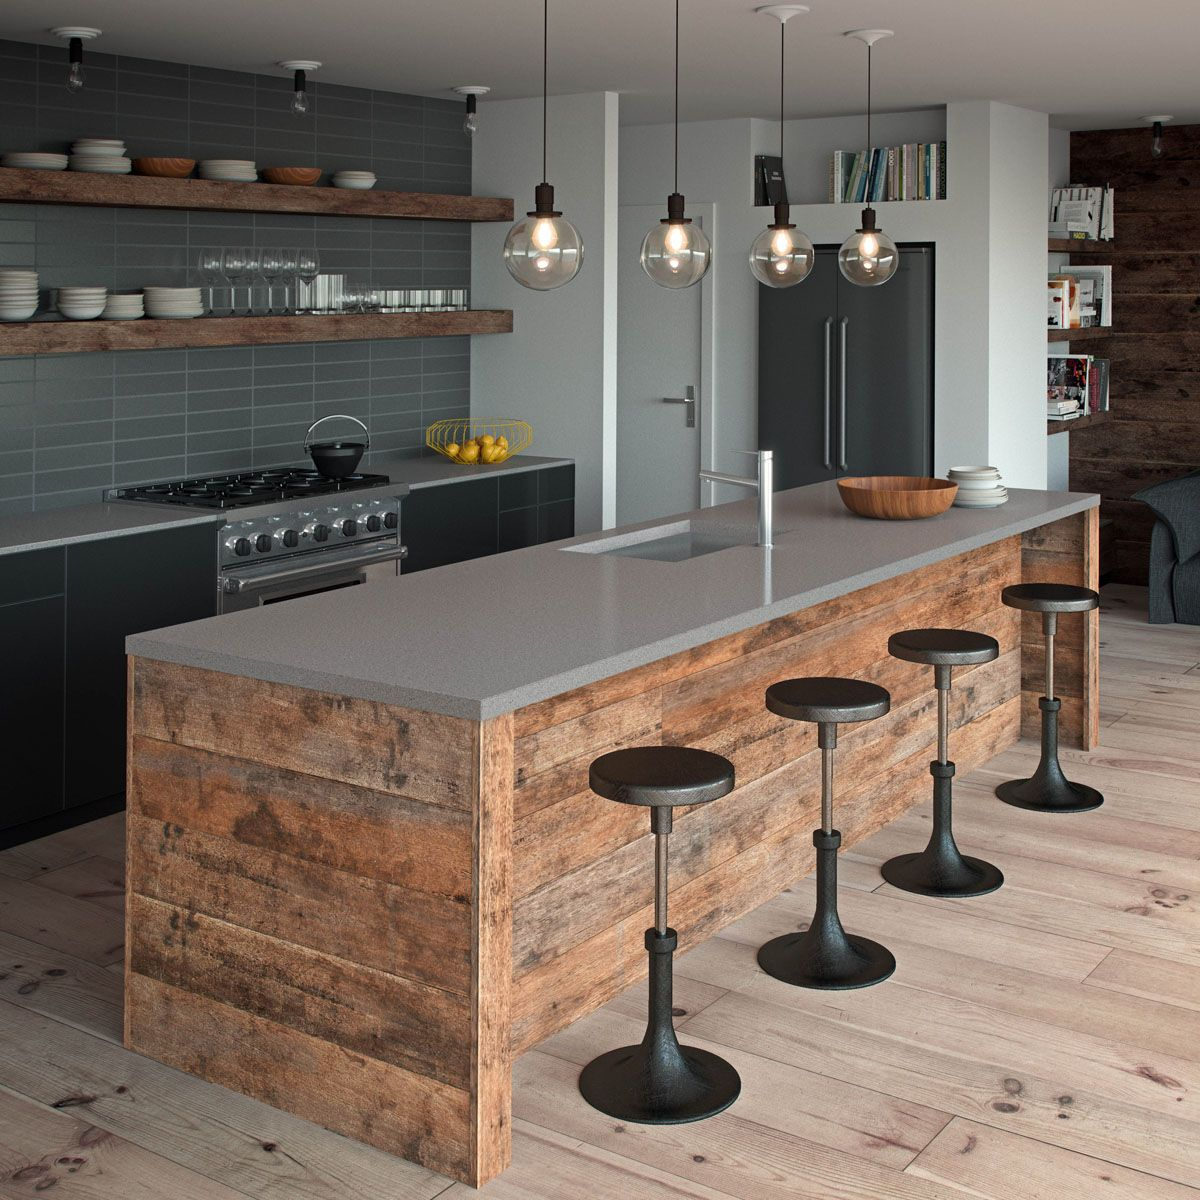 Prime Just Gorgeous This Kitchen Features An Island Bench Top Pdpeps Interior Chair Design Pdpepsorg